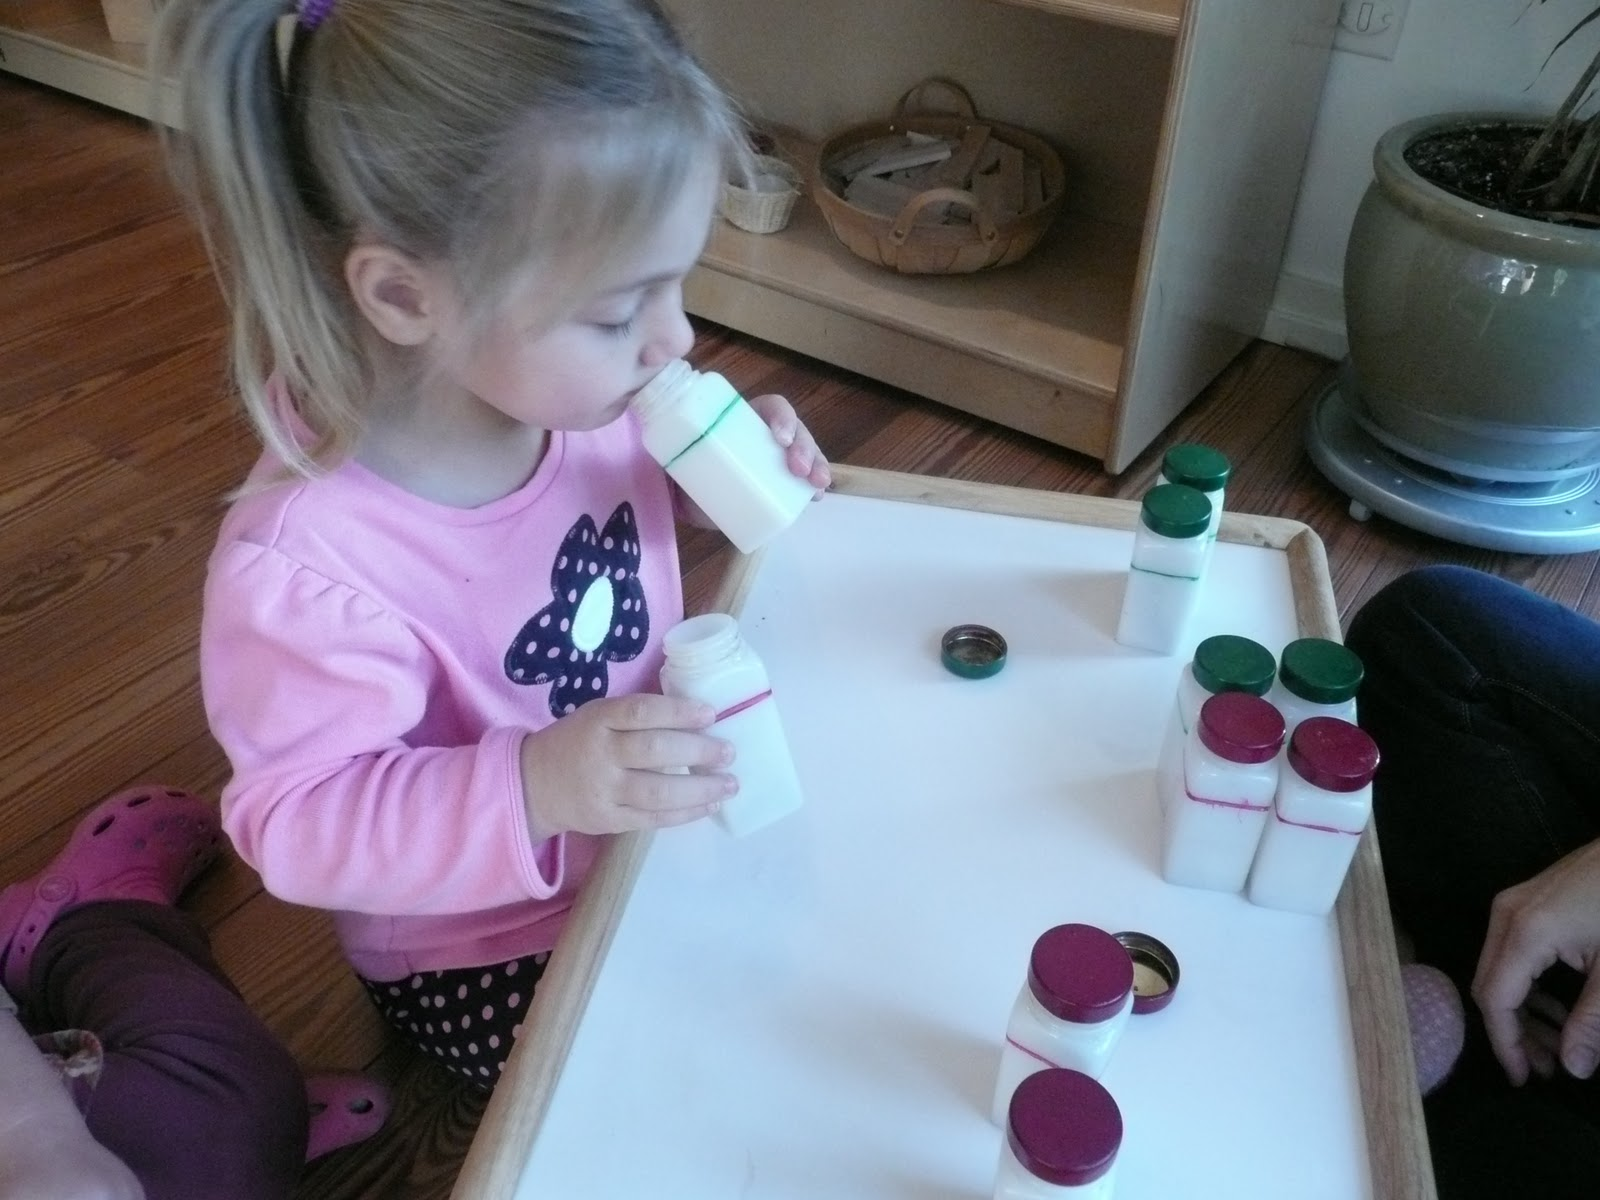 Montessori Teachings: Sensorial Education and the Smelling Bottles